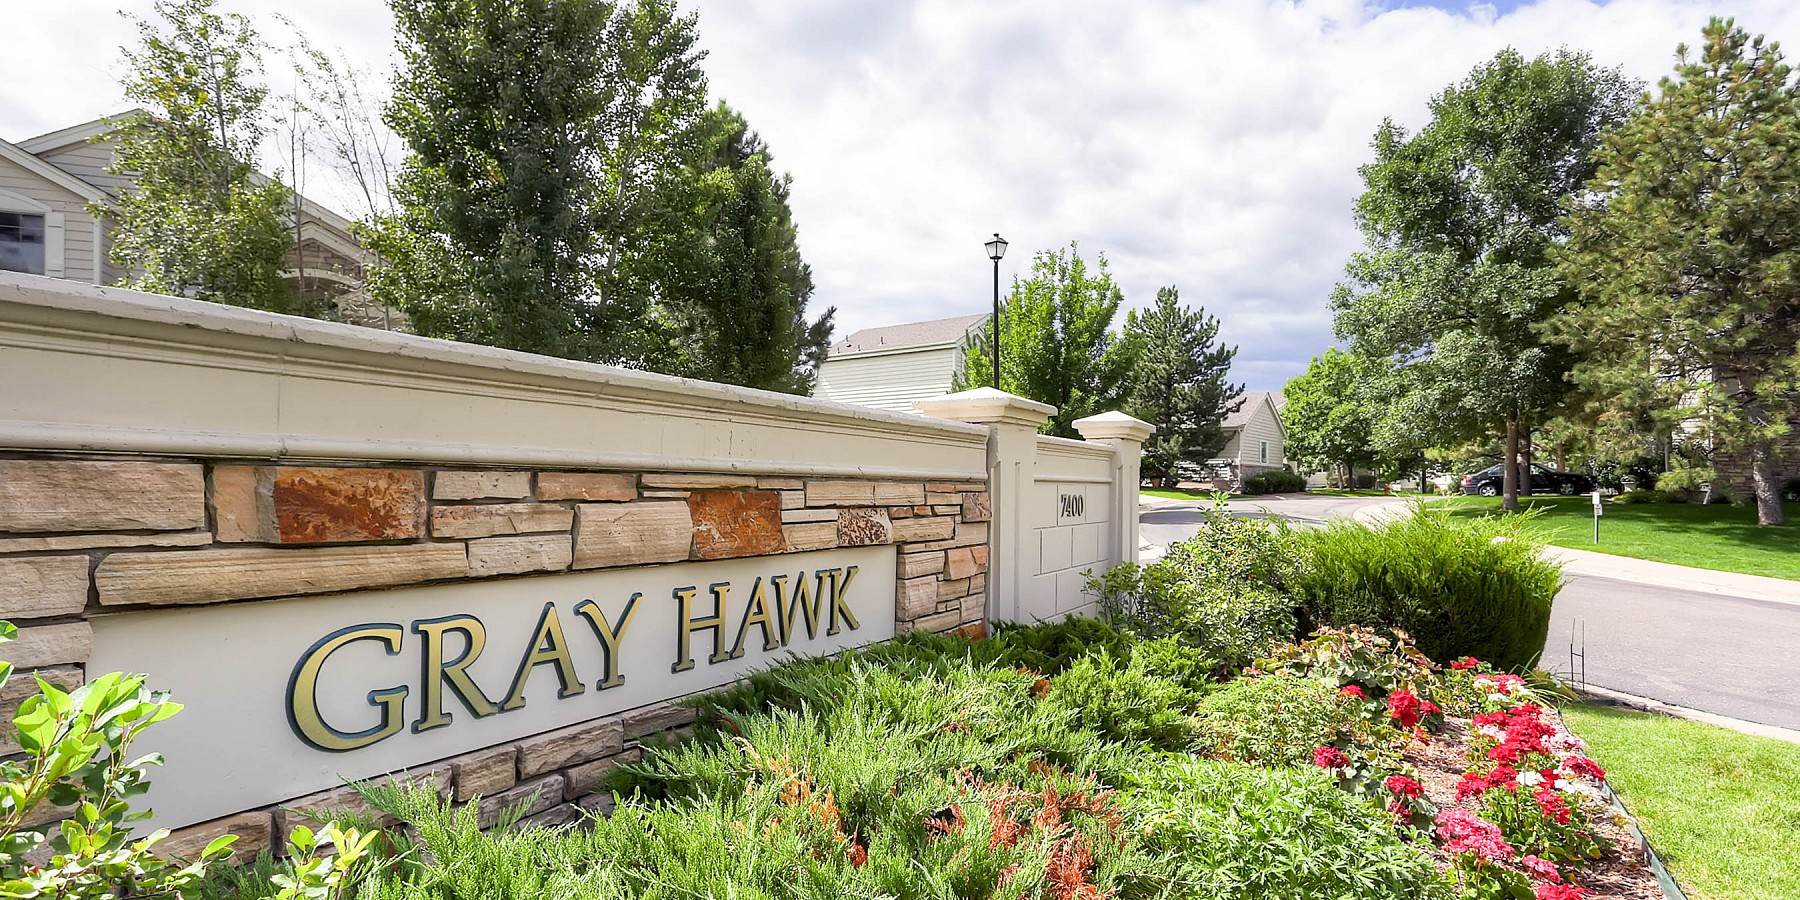 7400 West Grant Ranch Boulevard #52, Denver, CO 80123